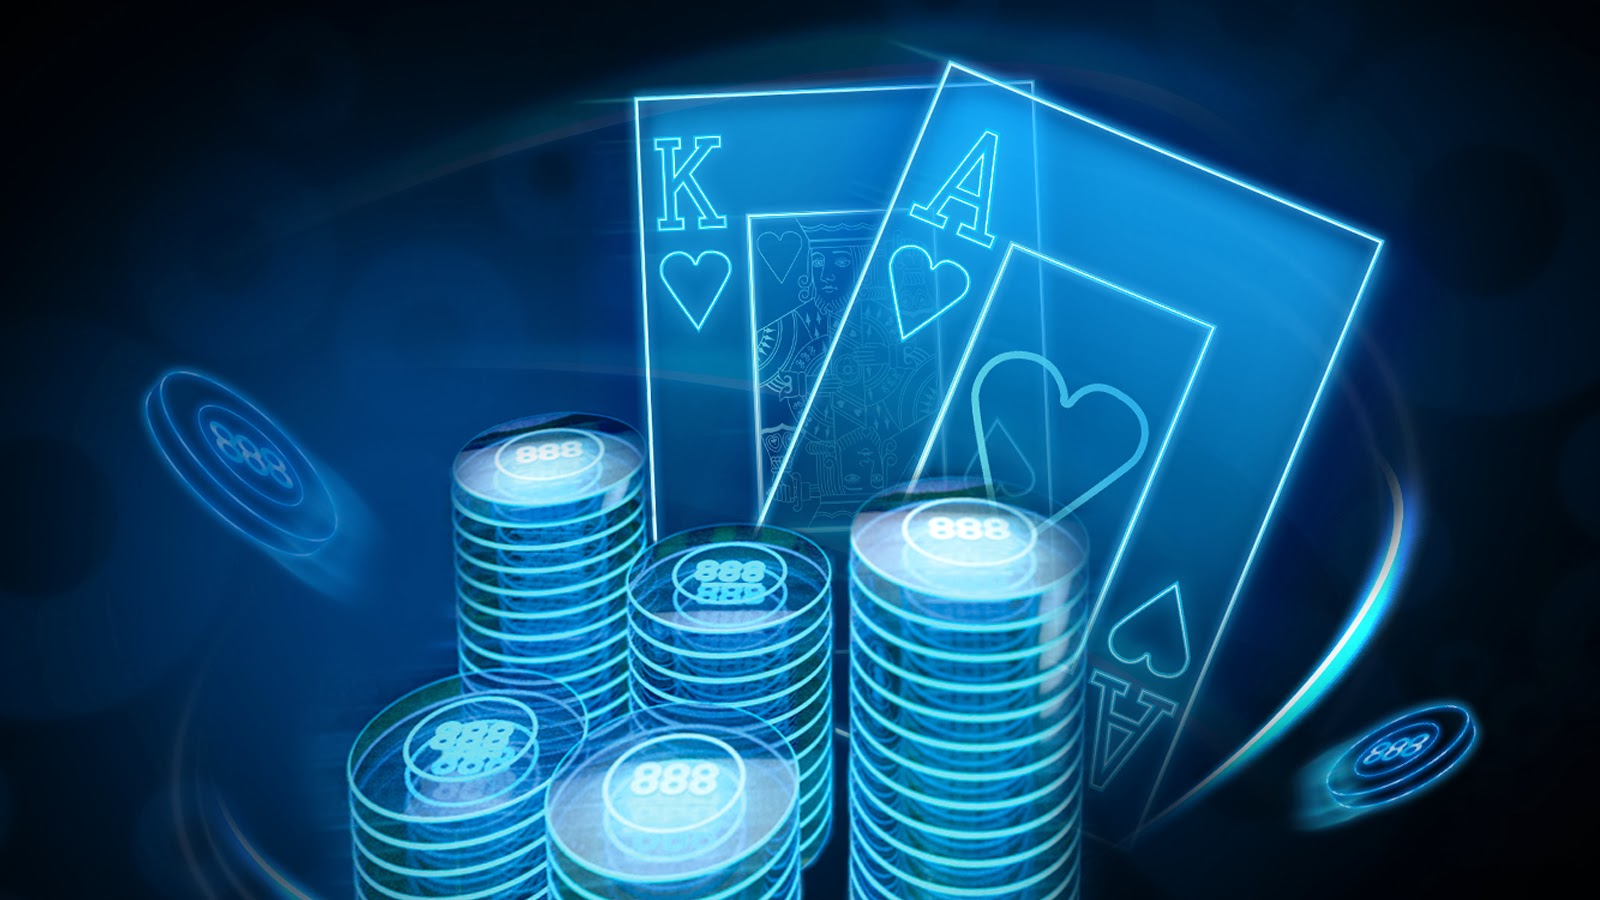 Tips For Smoothly Playing On The PKV Games Rajapoker88 Site Via Android